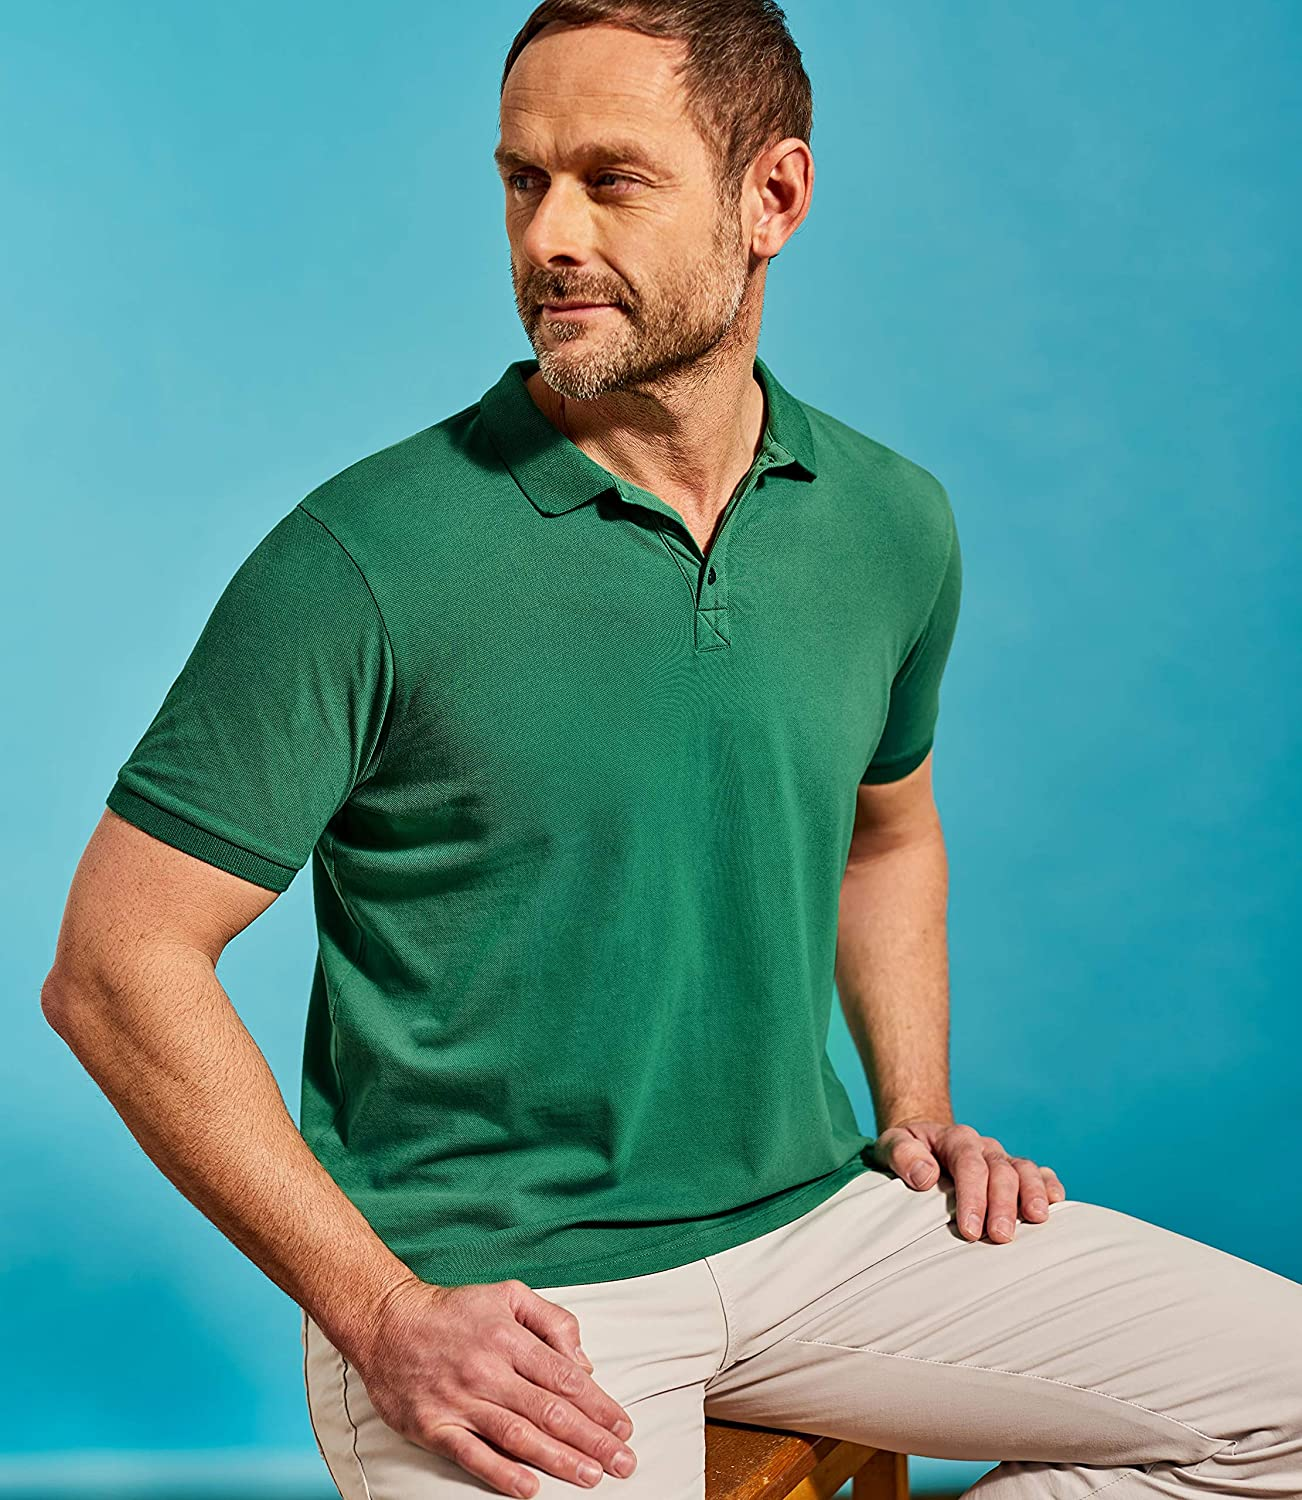 Wool Overs Mens Slim Short Sleeve Collared Polo Shirt Top